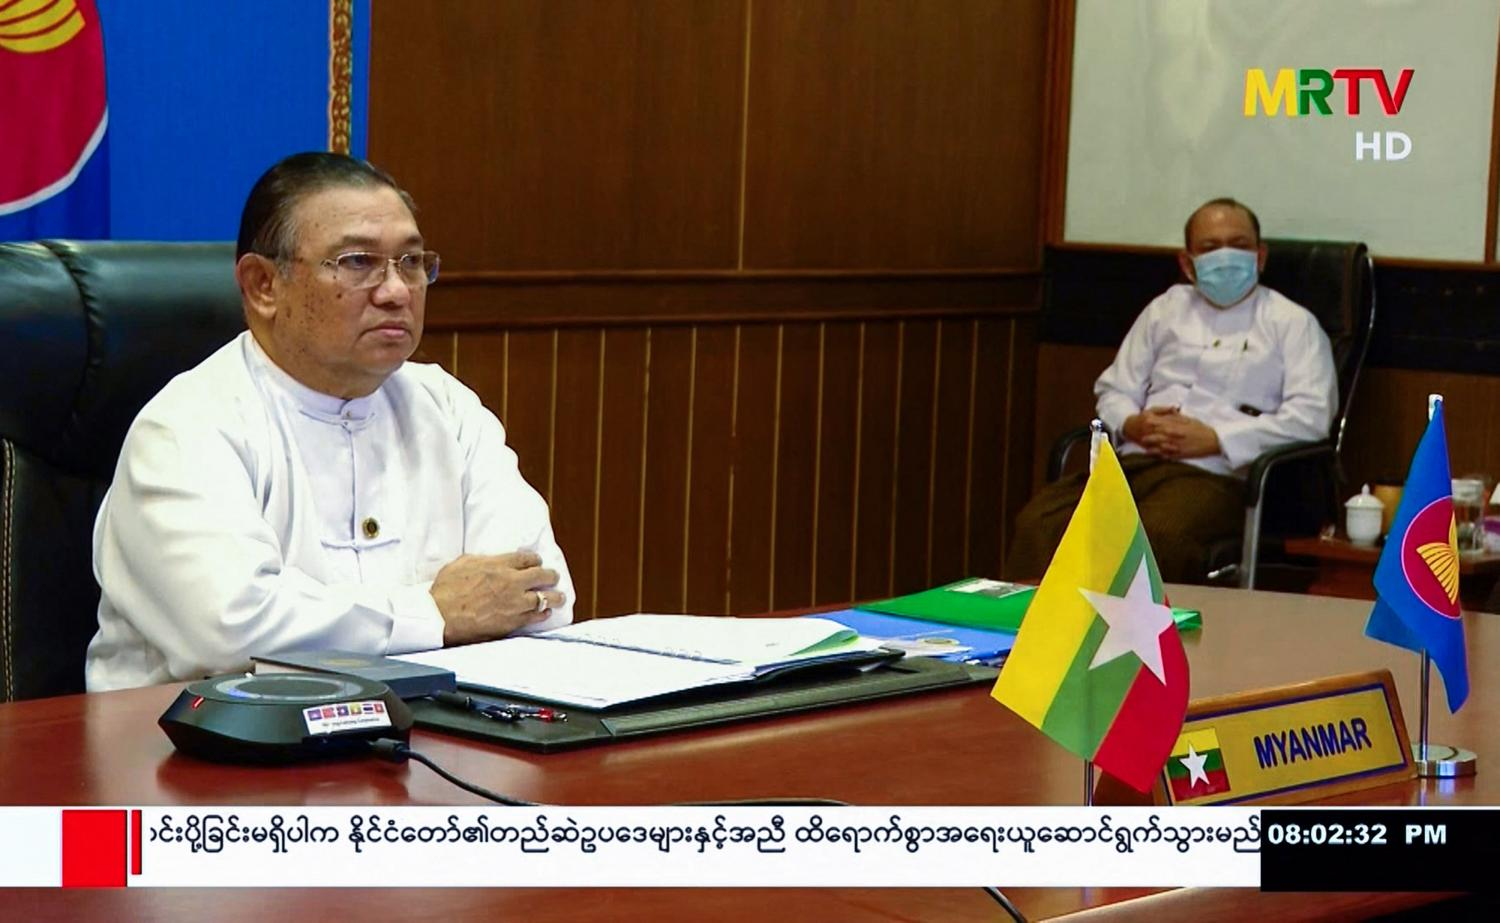 Myanmar's Foreign Minister Wunna Maung Lwin takes part in a virtual meeting of Asean foreign ministers in Nay Pyi Taw last Friday. AFP